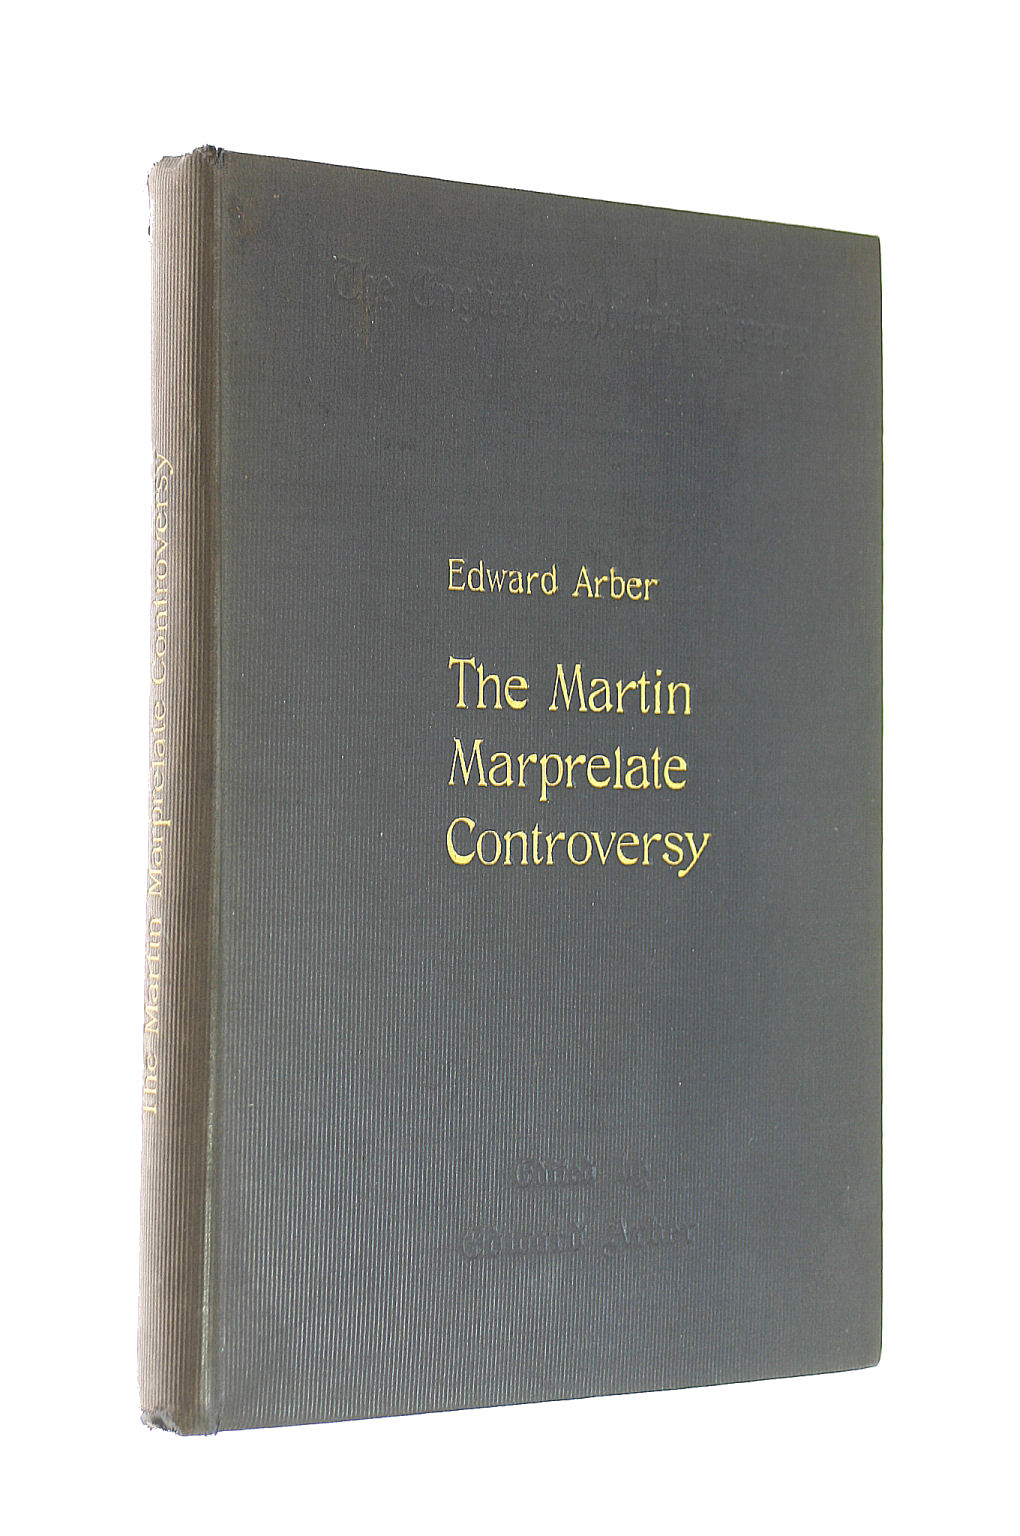 Image for An Introductory Sketch To The Martin Marprelate Controversy 1588-1590 - The Epistle